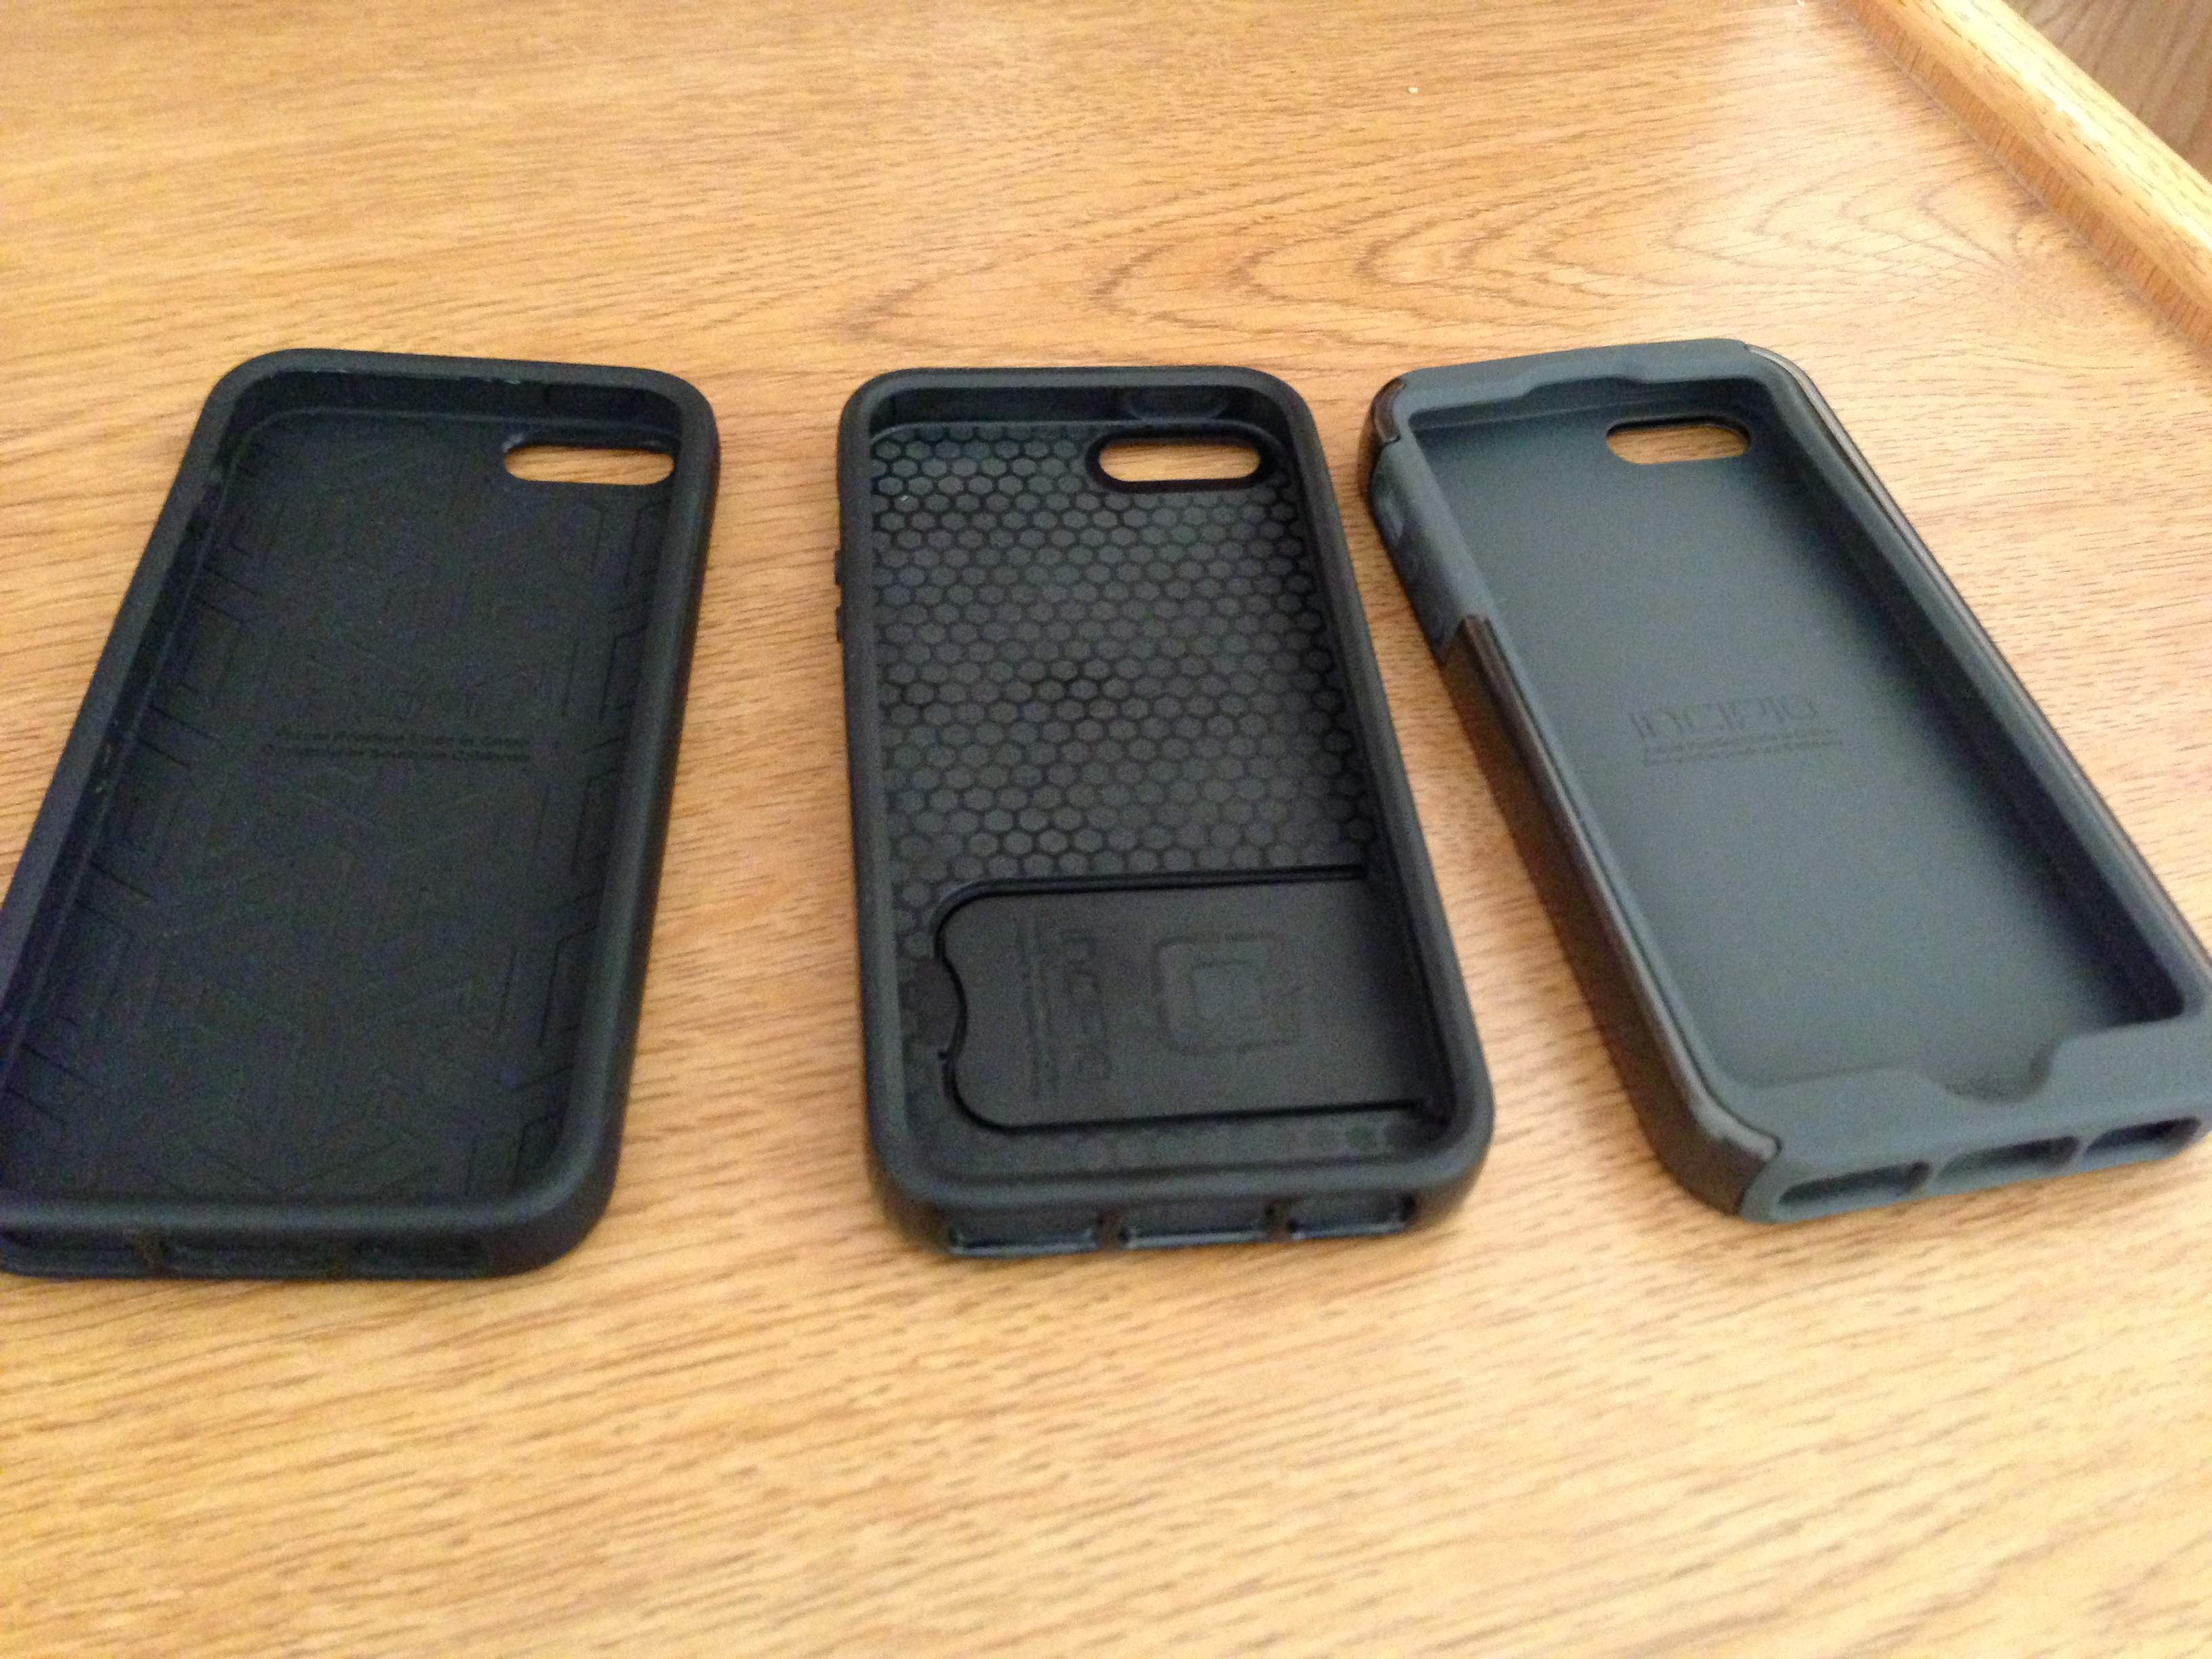 buy popular 4ee44 05fd7 Review: Incipio iPhone 5 Kicksnap, DualPro SHINE, OVRMLD cases - 9to5Mac